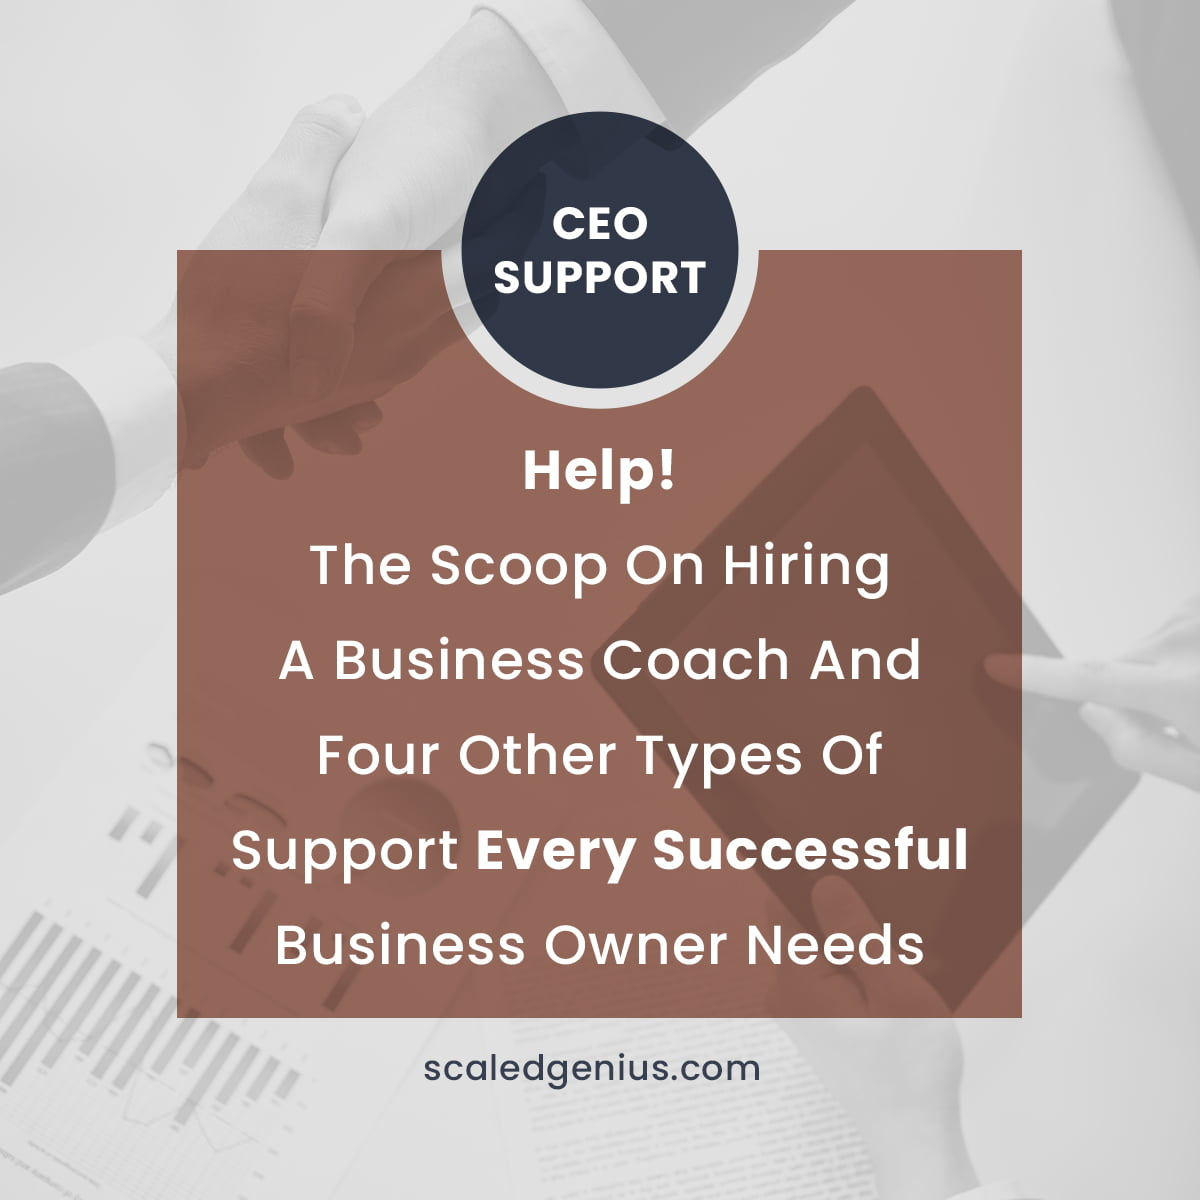 Help! The Scoop on Hiring a Business Coach and 4 Other Types of Support Every Successful Business Owner Needs